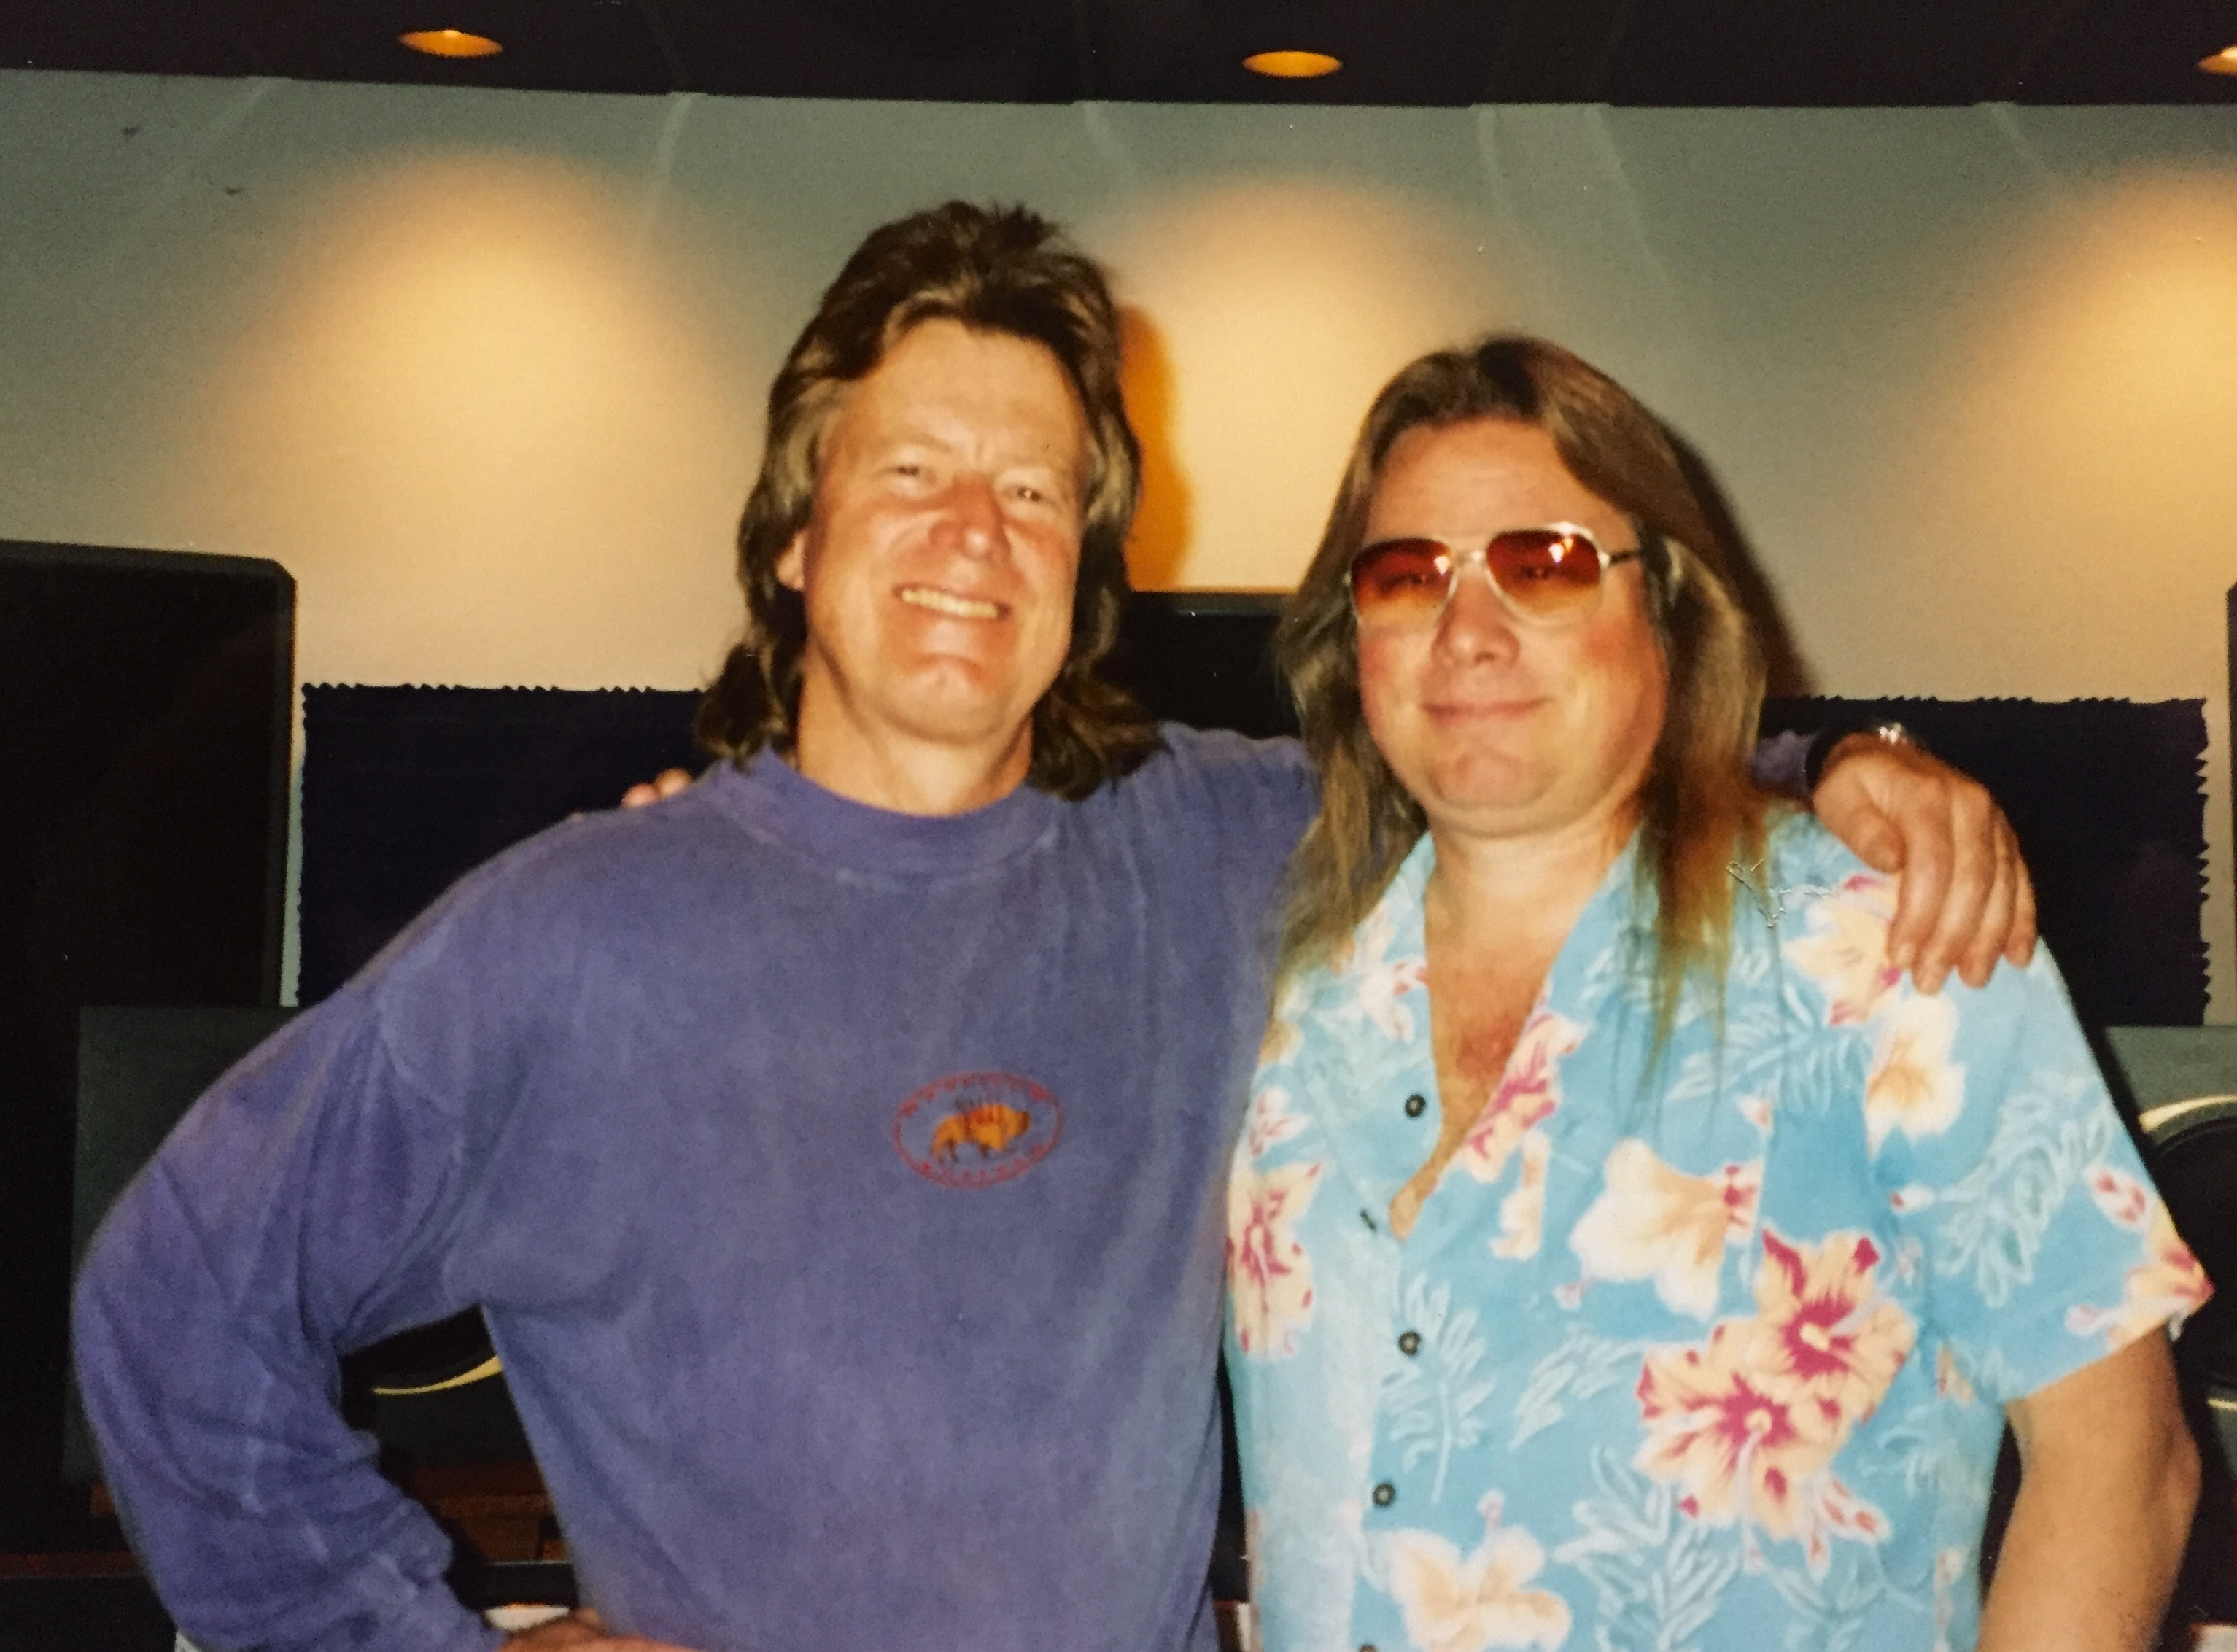 dean_torrance_of_jan_dean_and_merrell_after_vocal_session_on_polynesian_dream.jpg